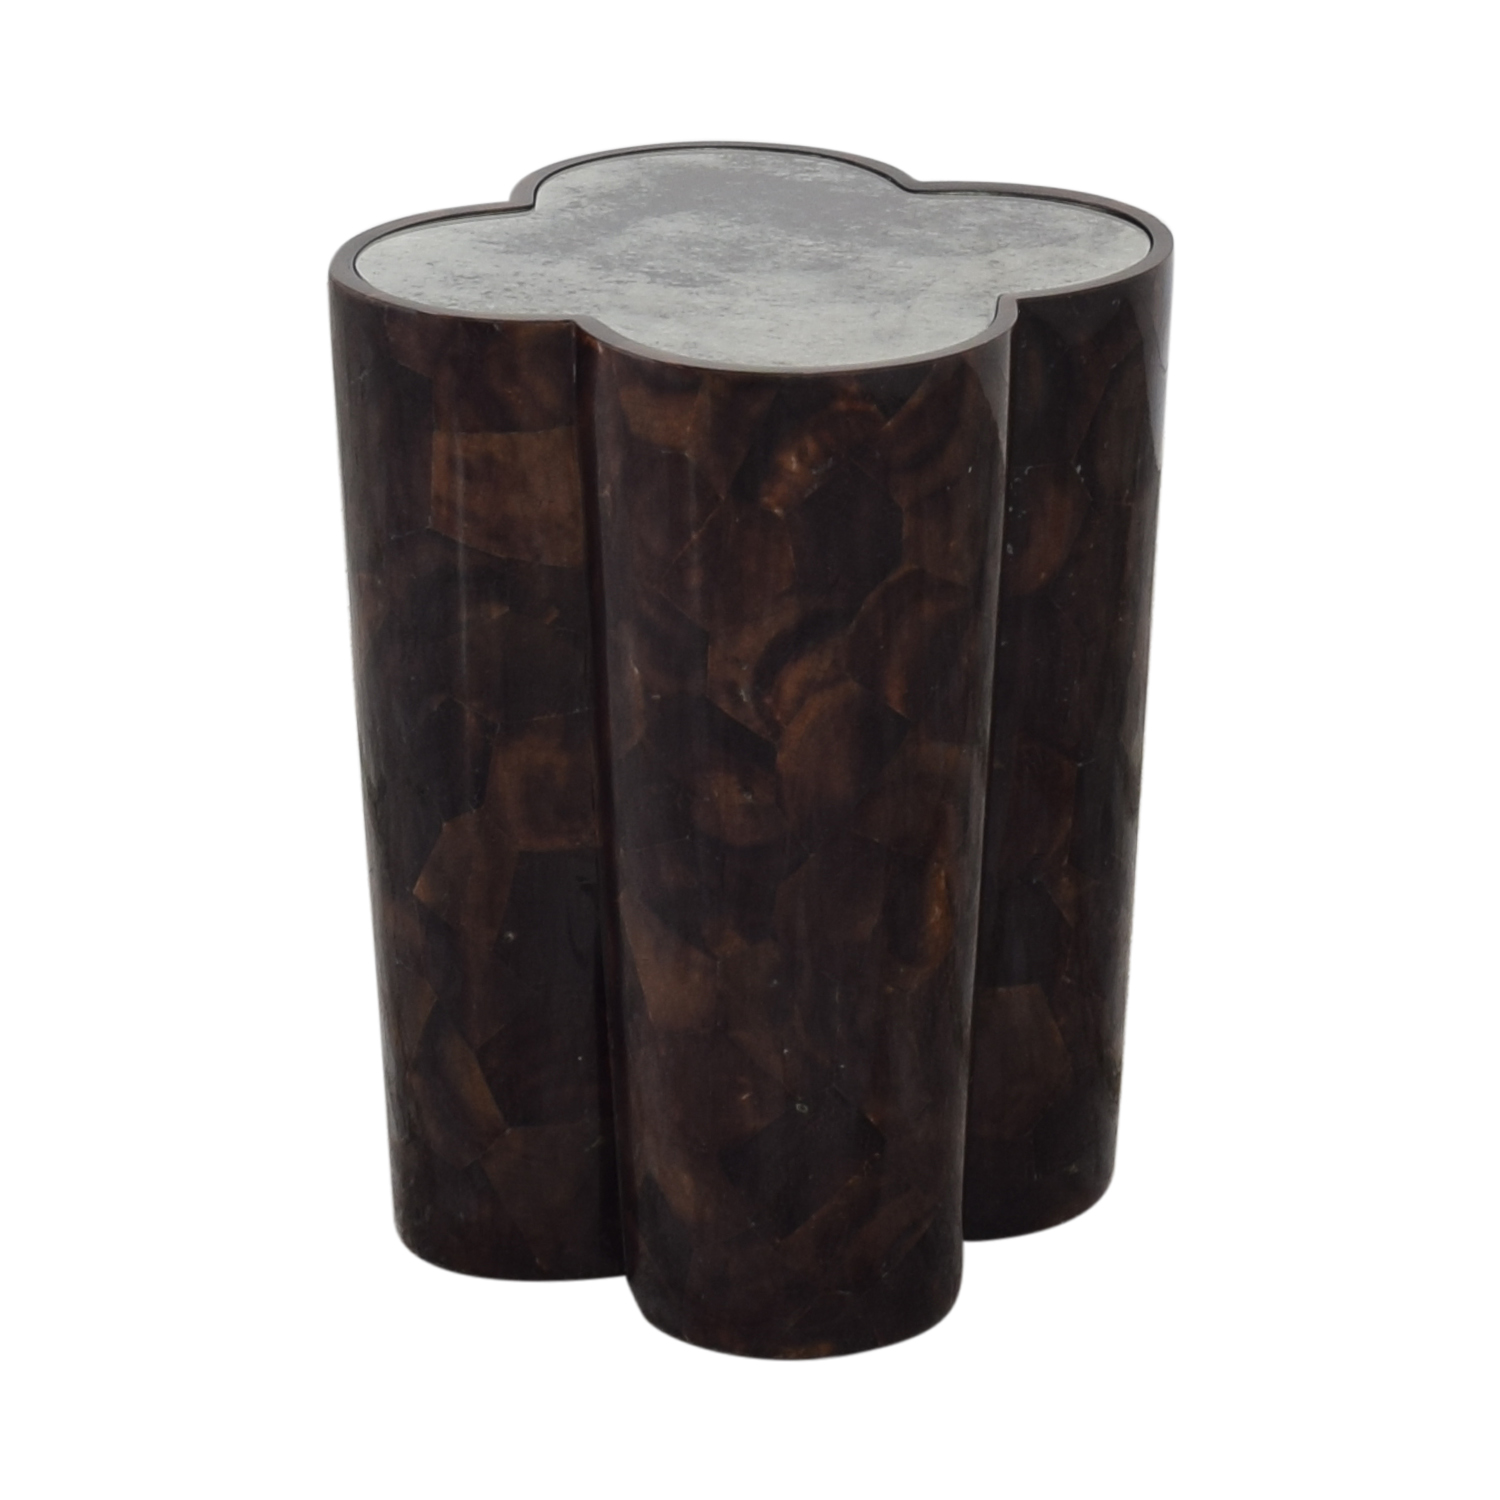 Penshell Side Table on sale